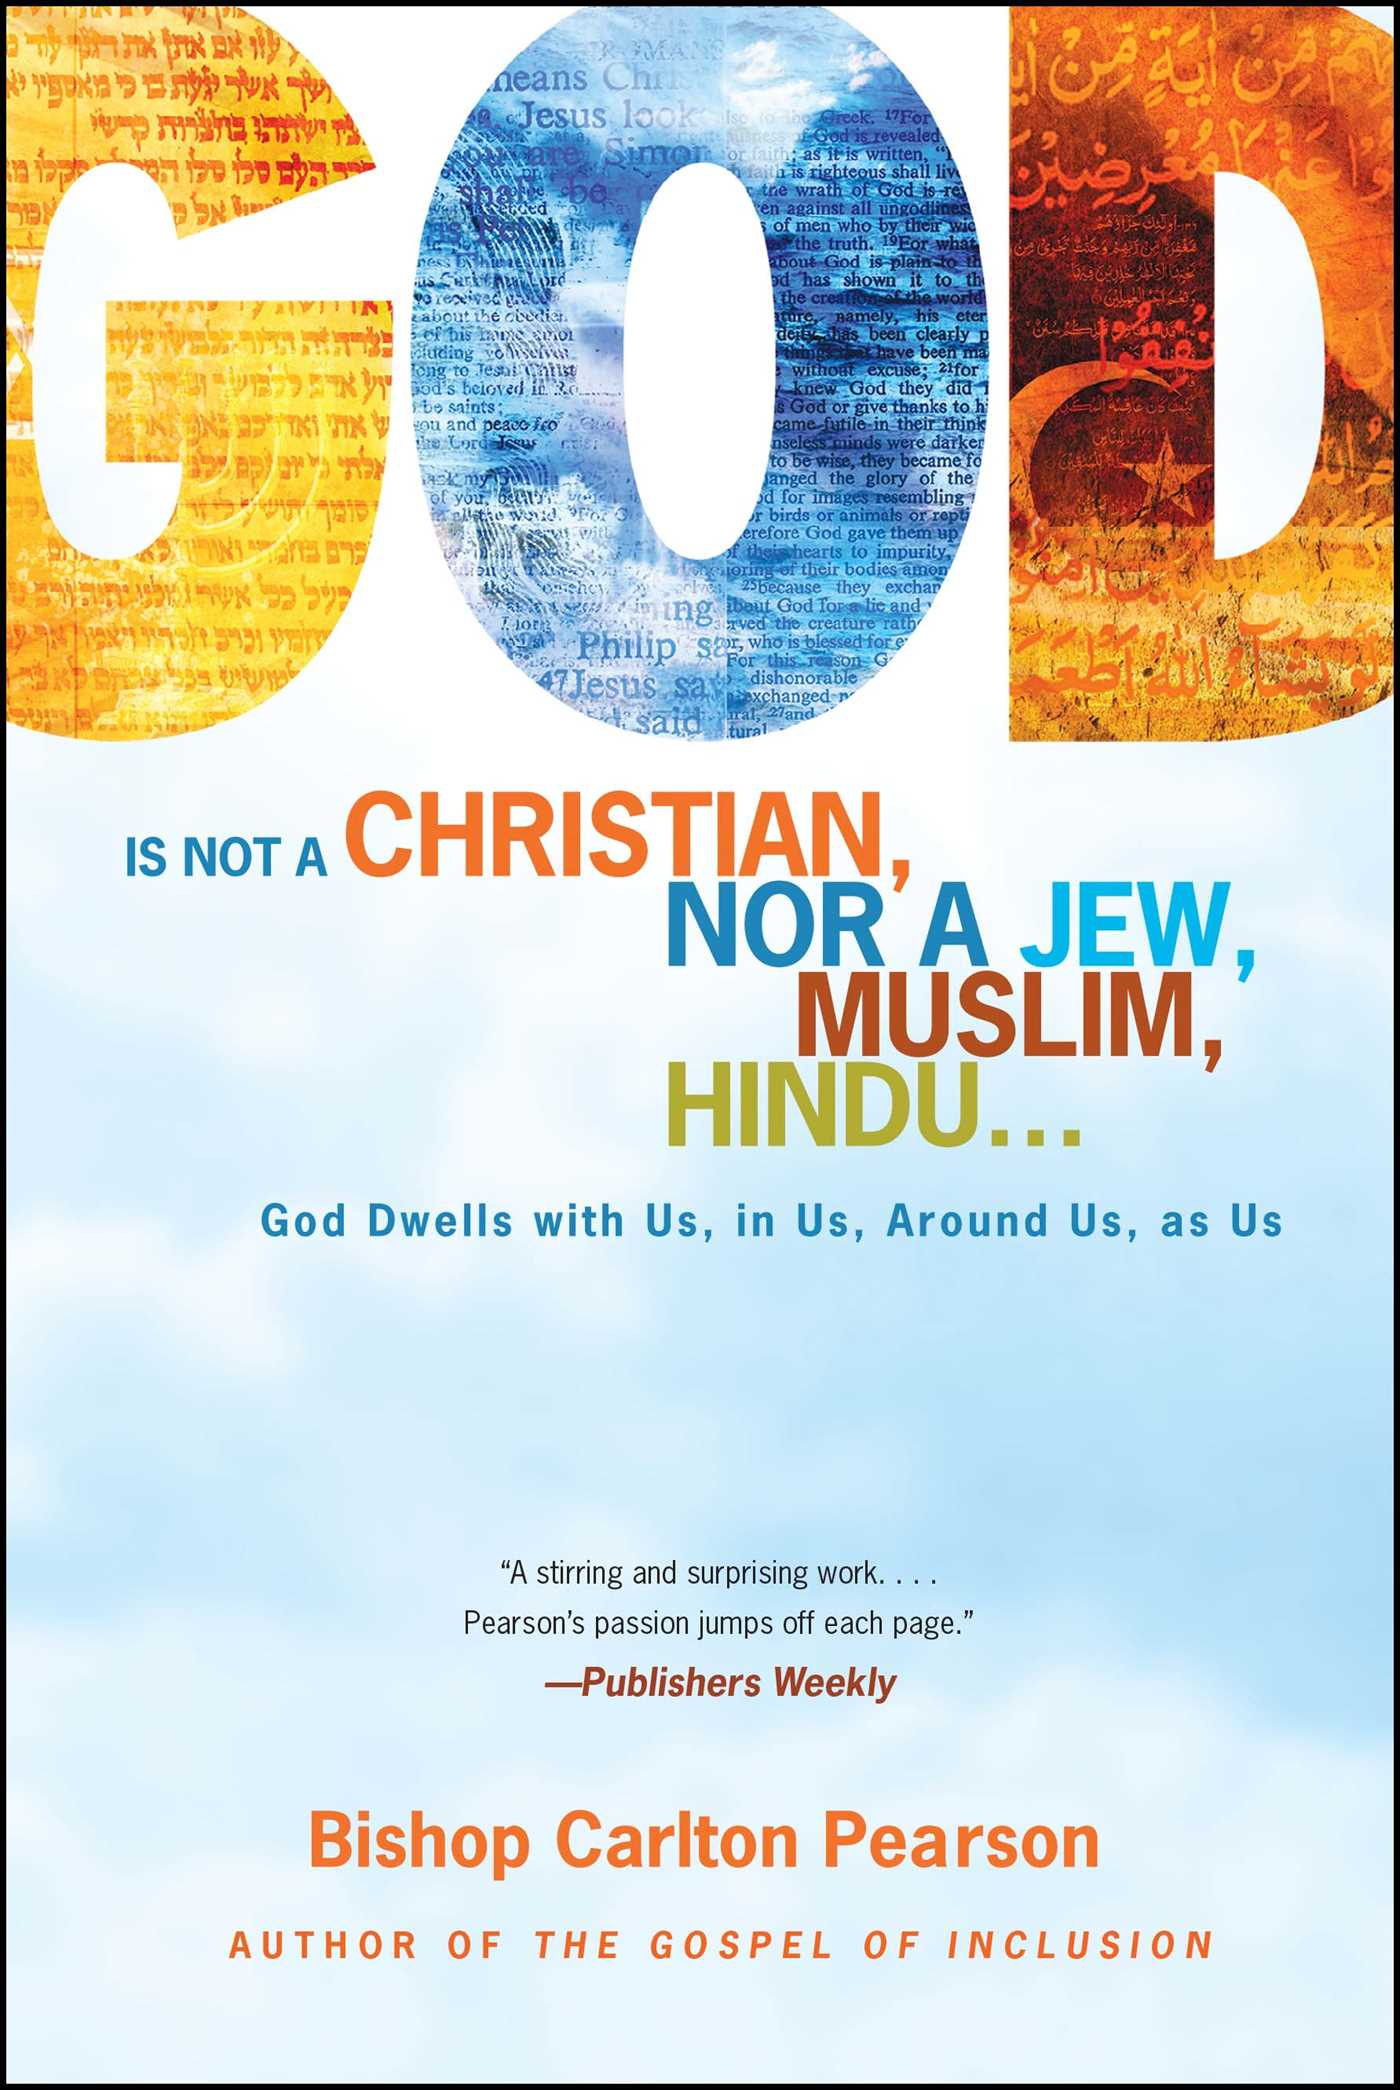 God is not a christian nor a jew muslim hindu 9781416585046 hr